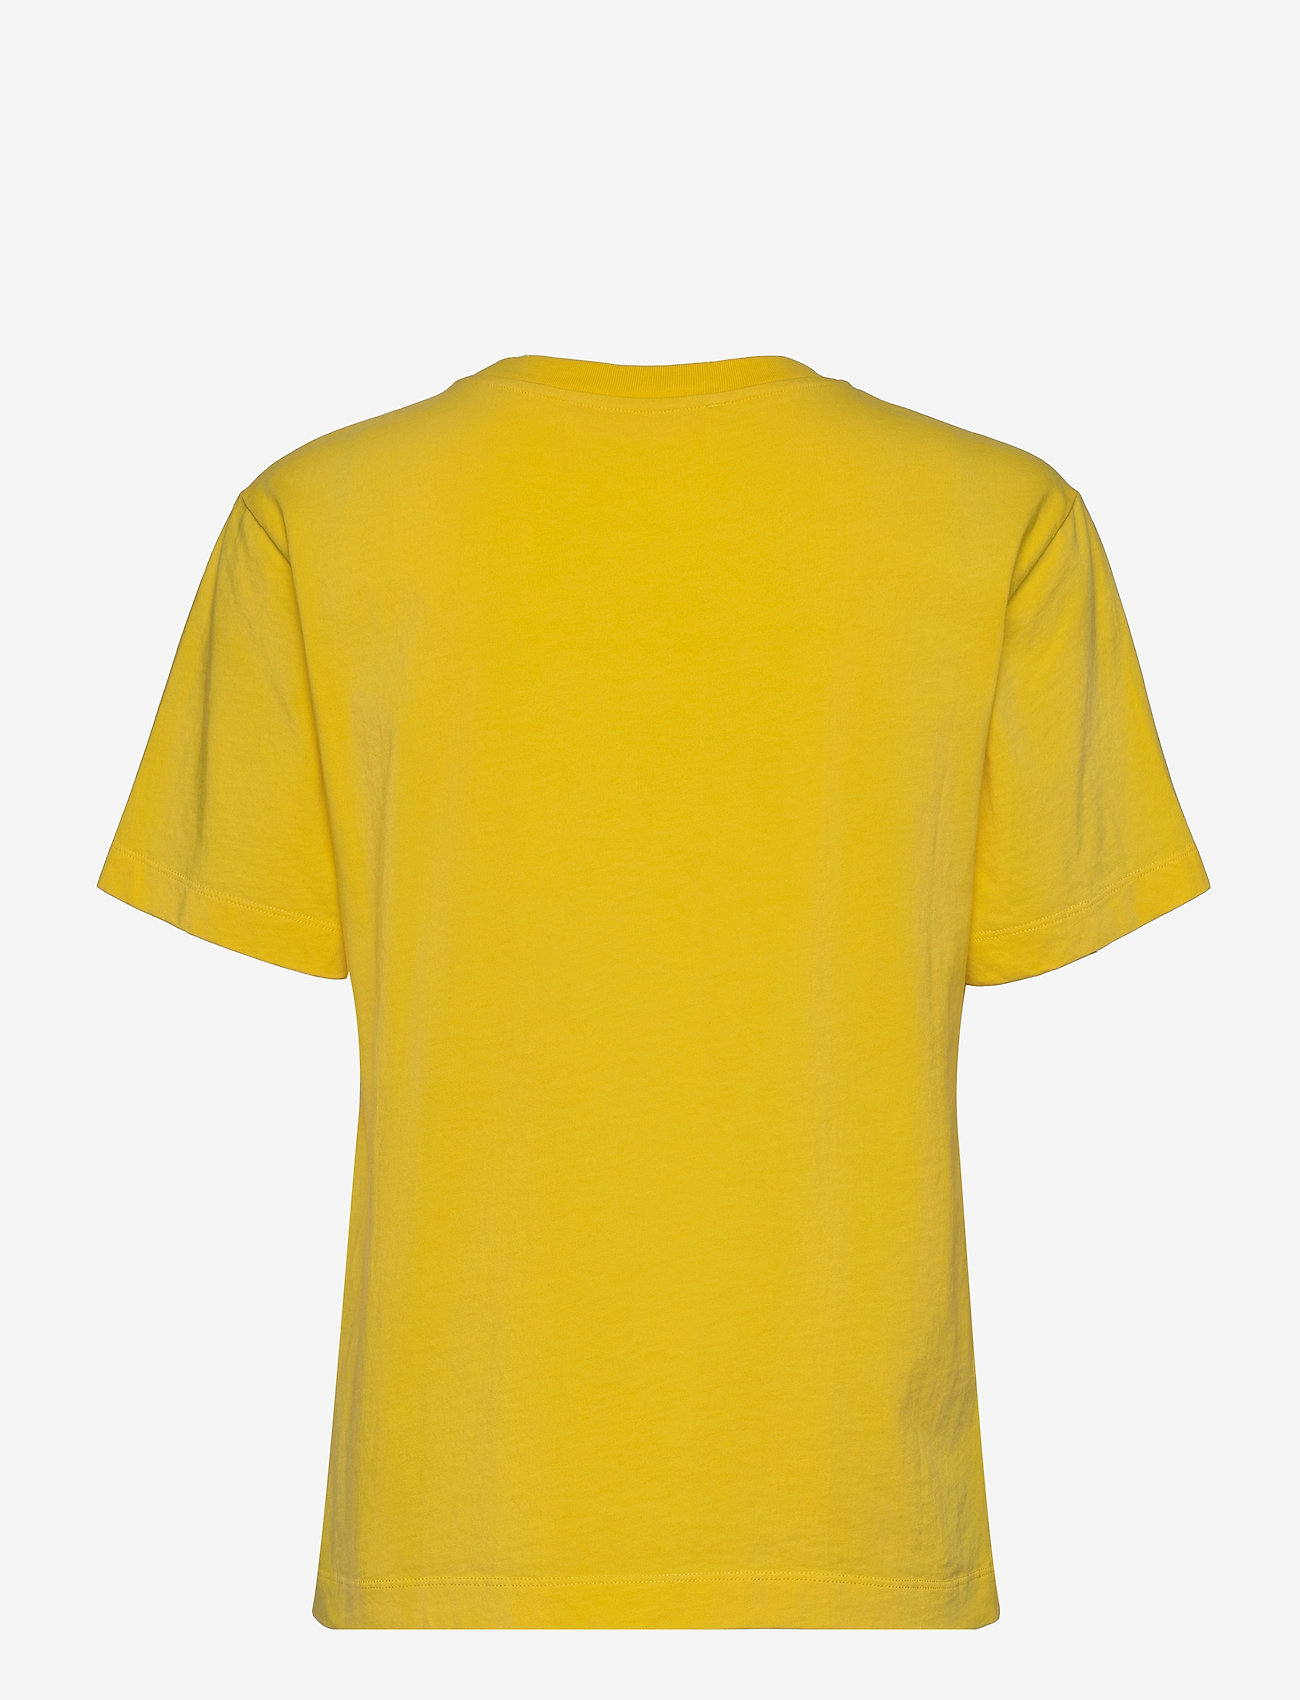 See by Chloé - TOP - t-shirts - daffodil yellow - 1